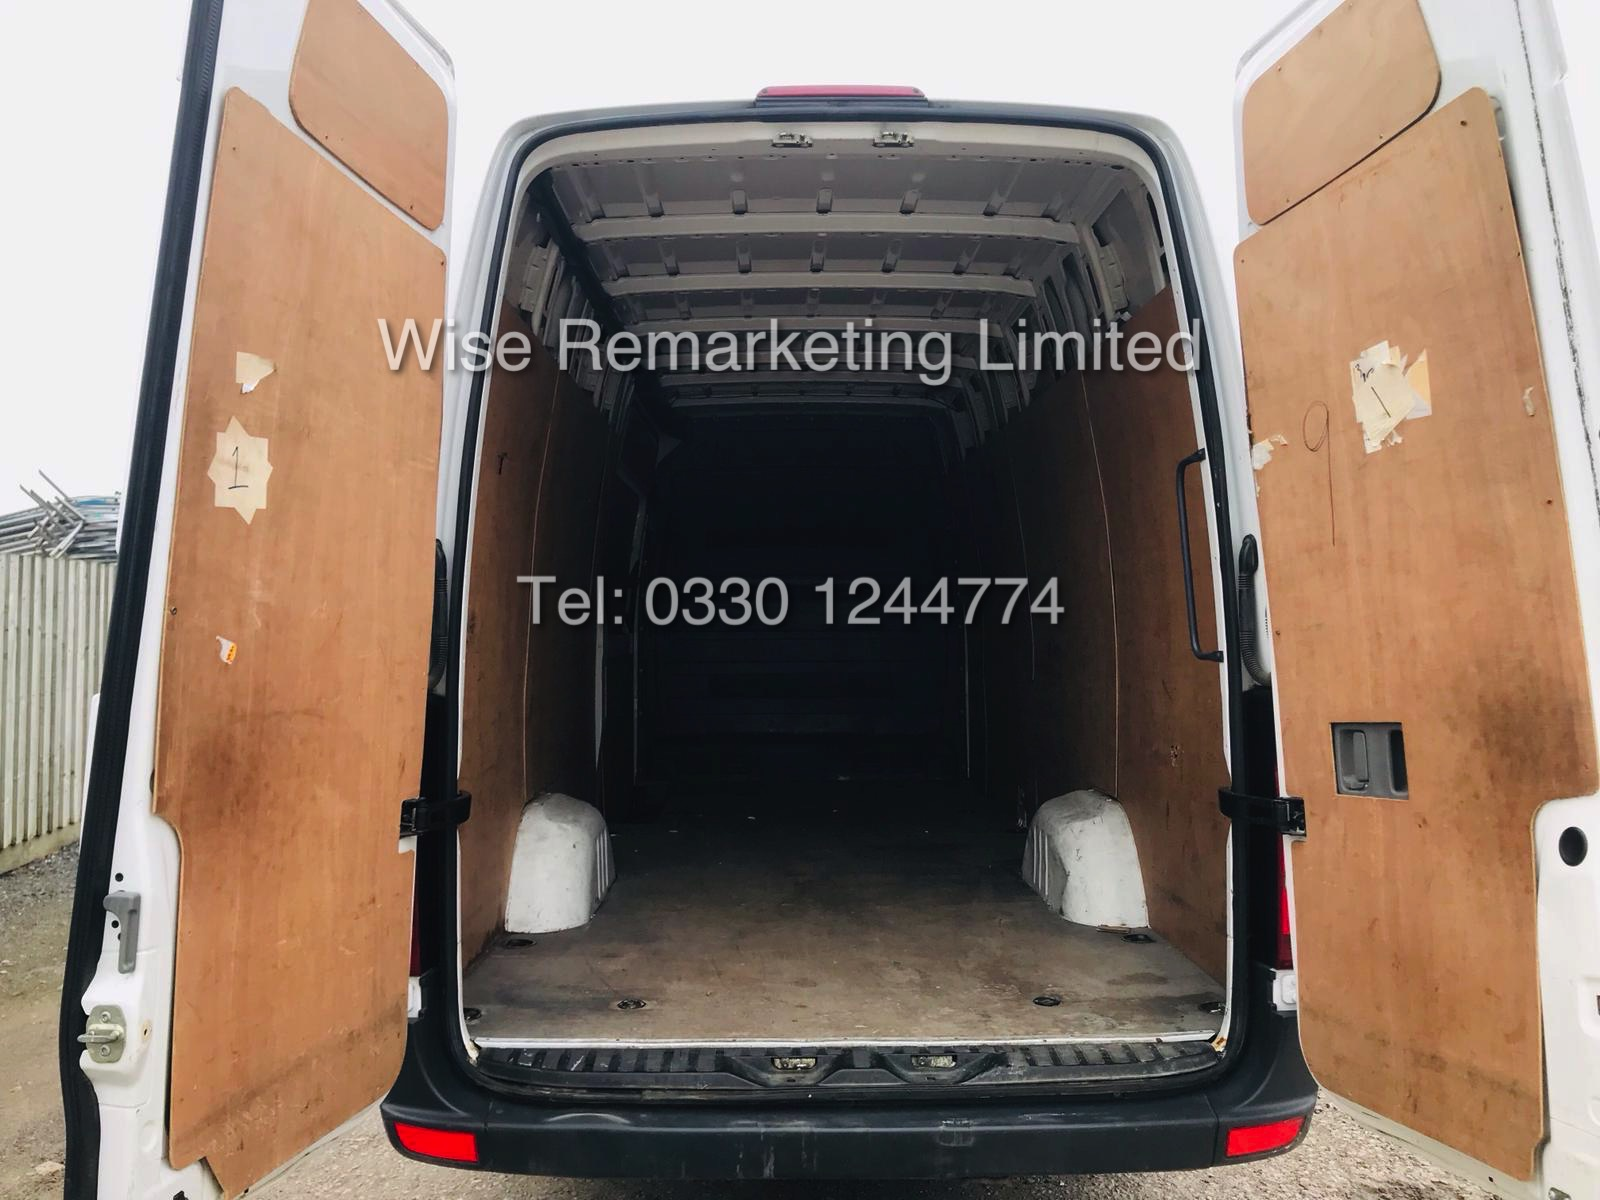 VOLKSWAGEN CRAFTER CR35 2.0 TDI LONG WHEEL BASE 2016 MODEL - Image 10 of 14